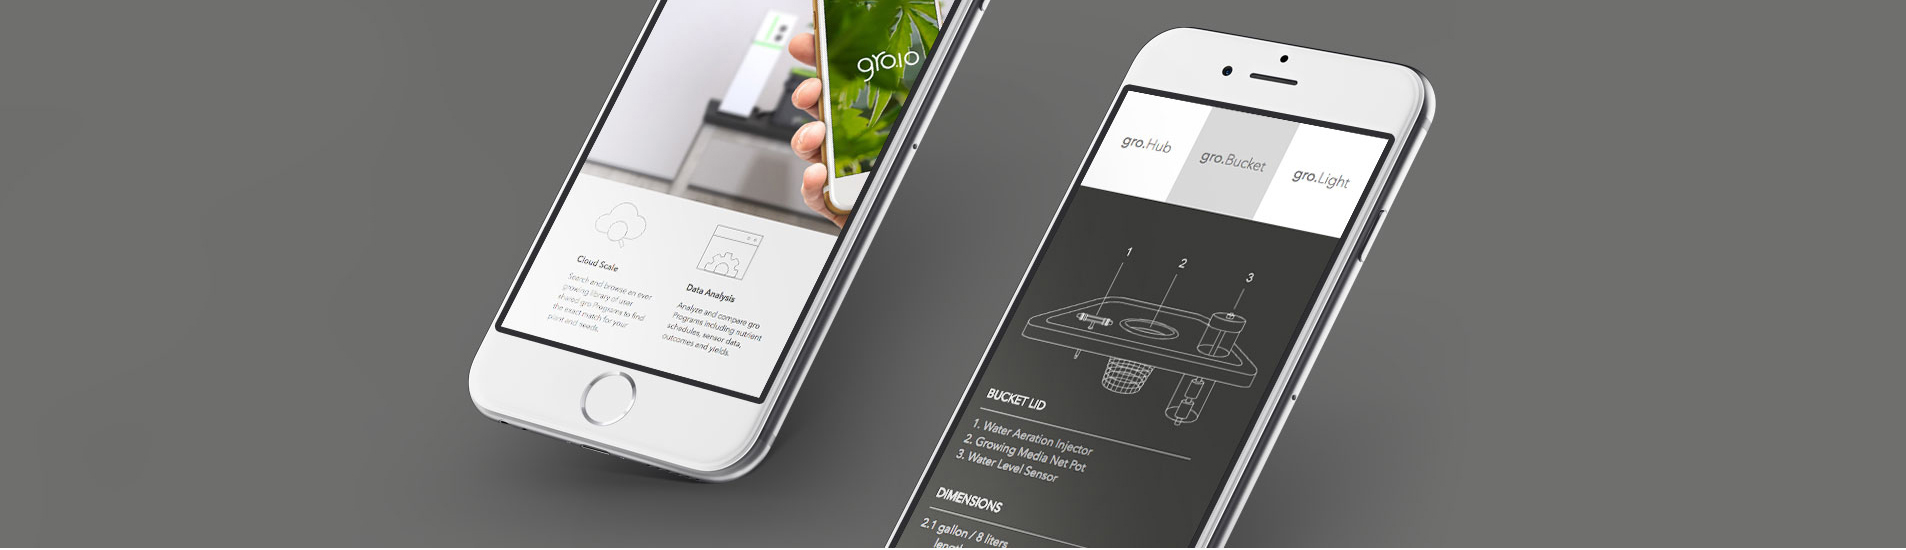 groio mobile website design